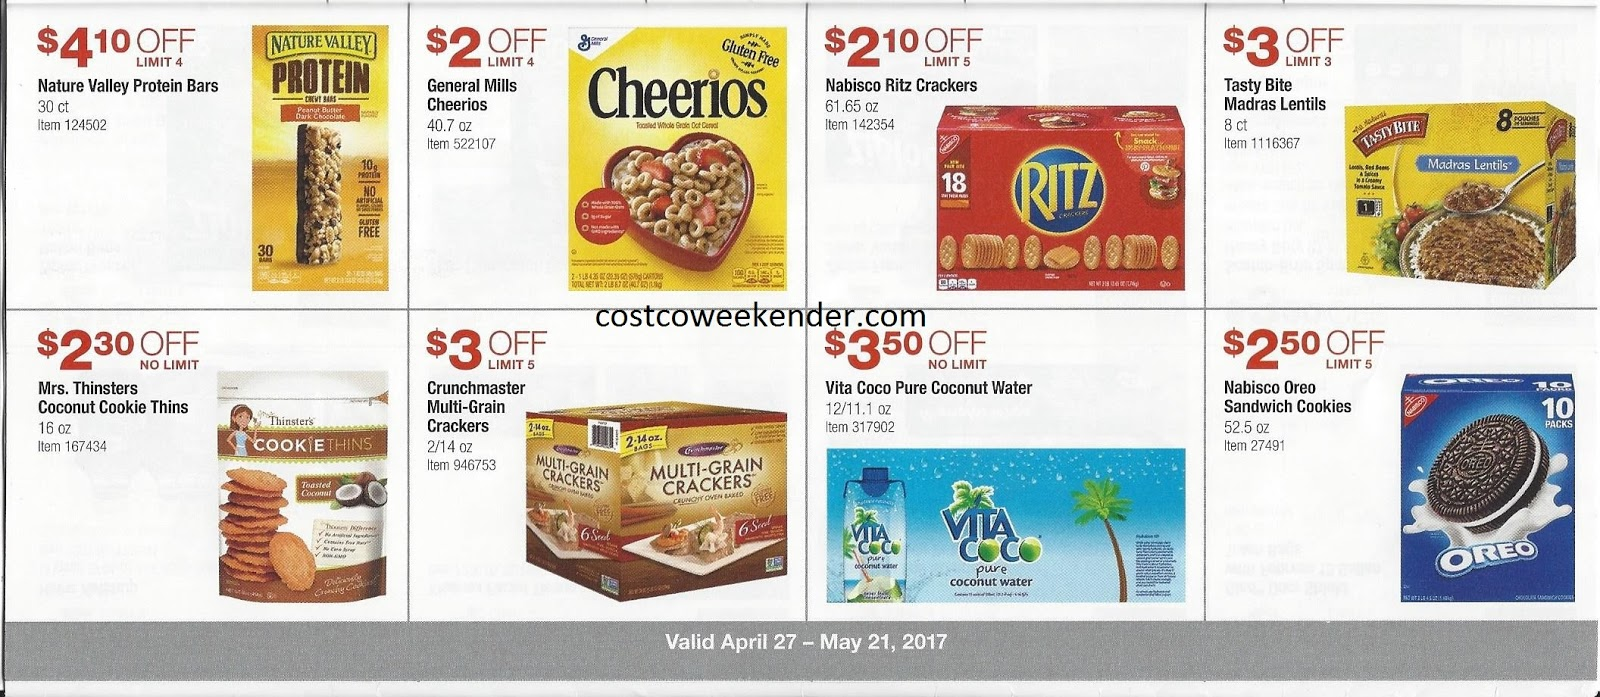 Costco online coupon code